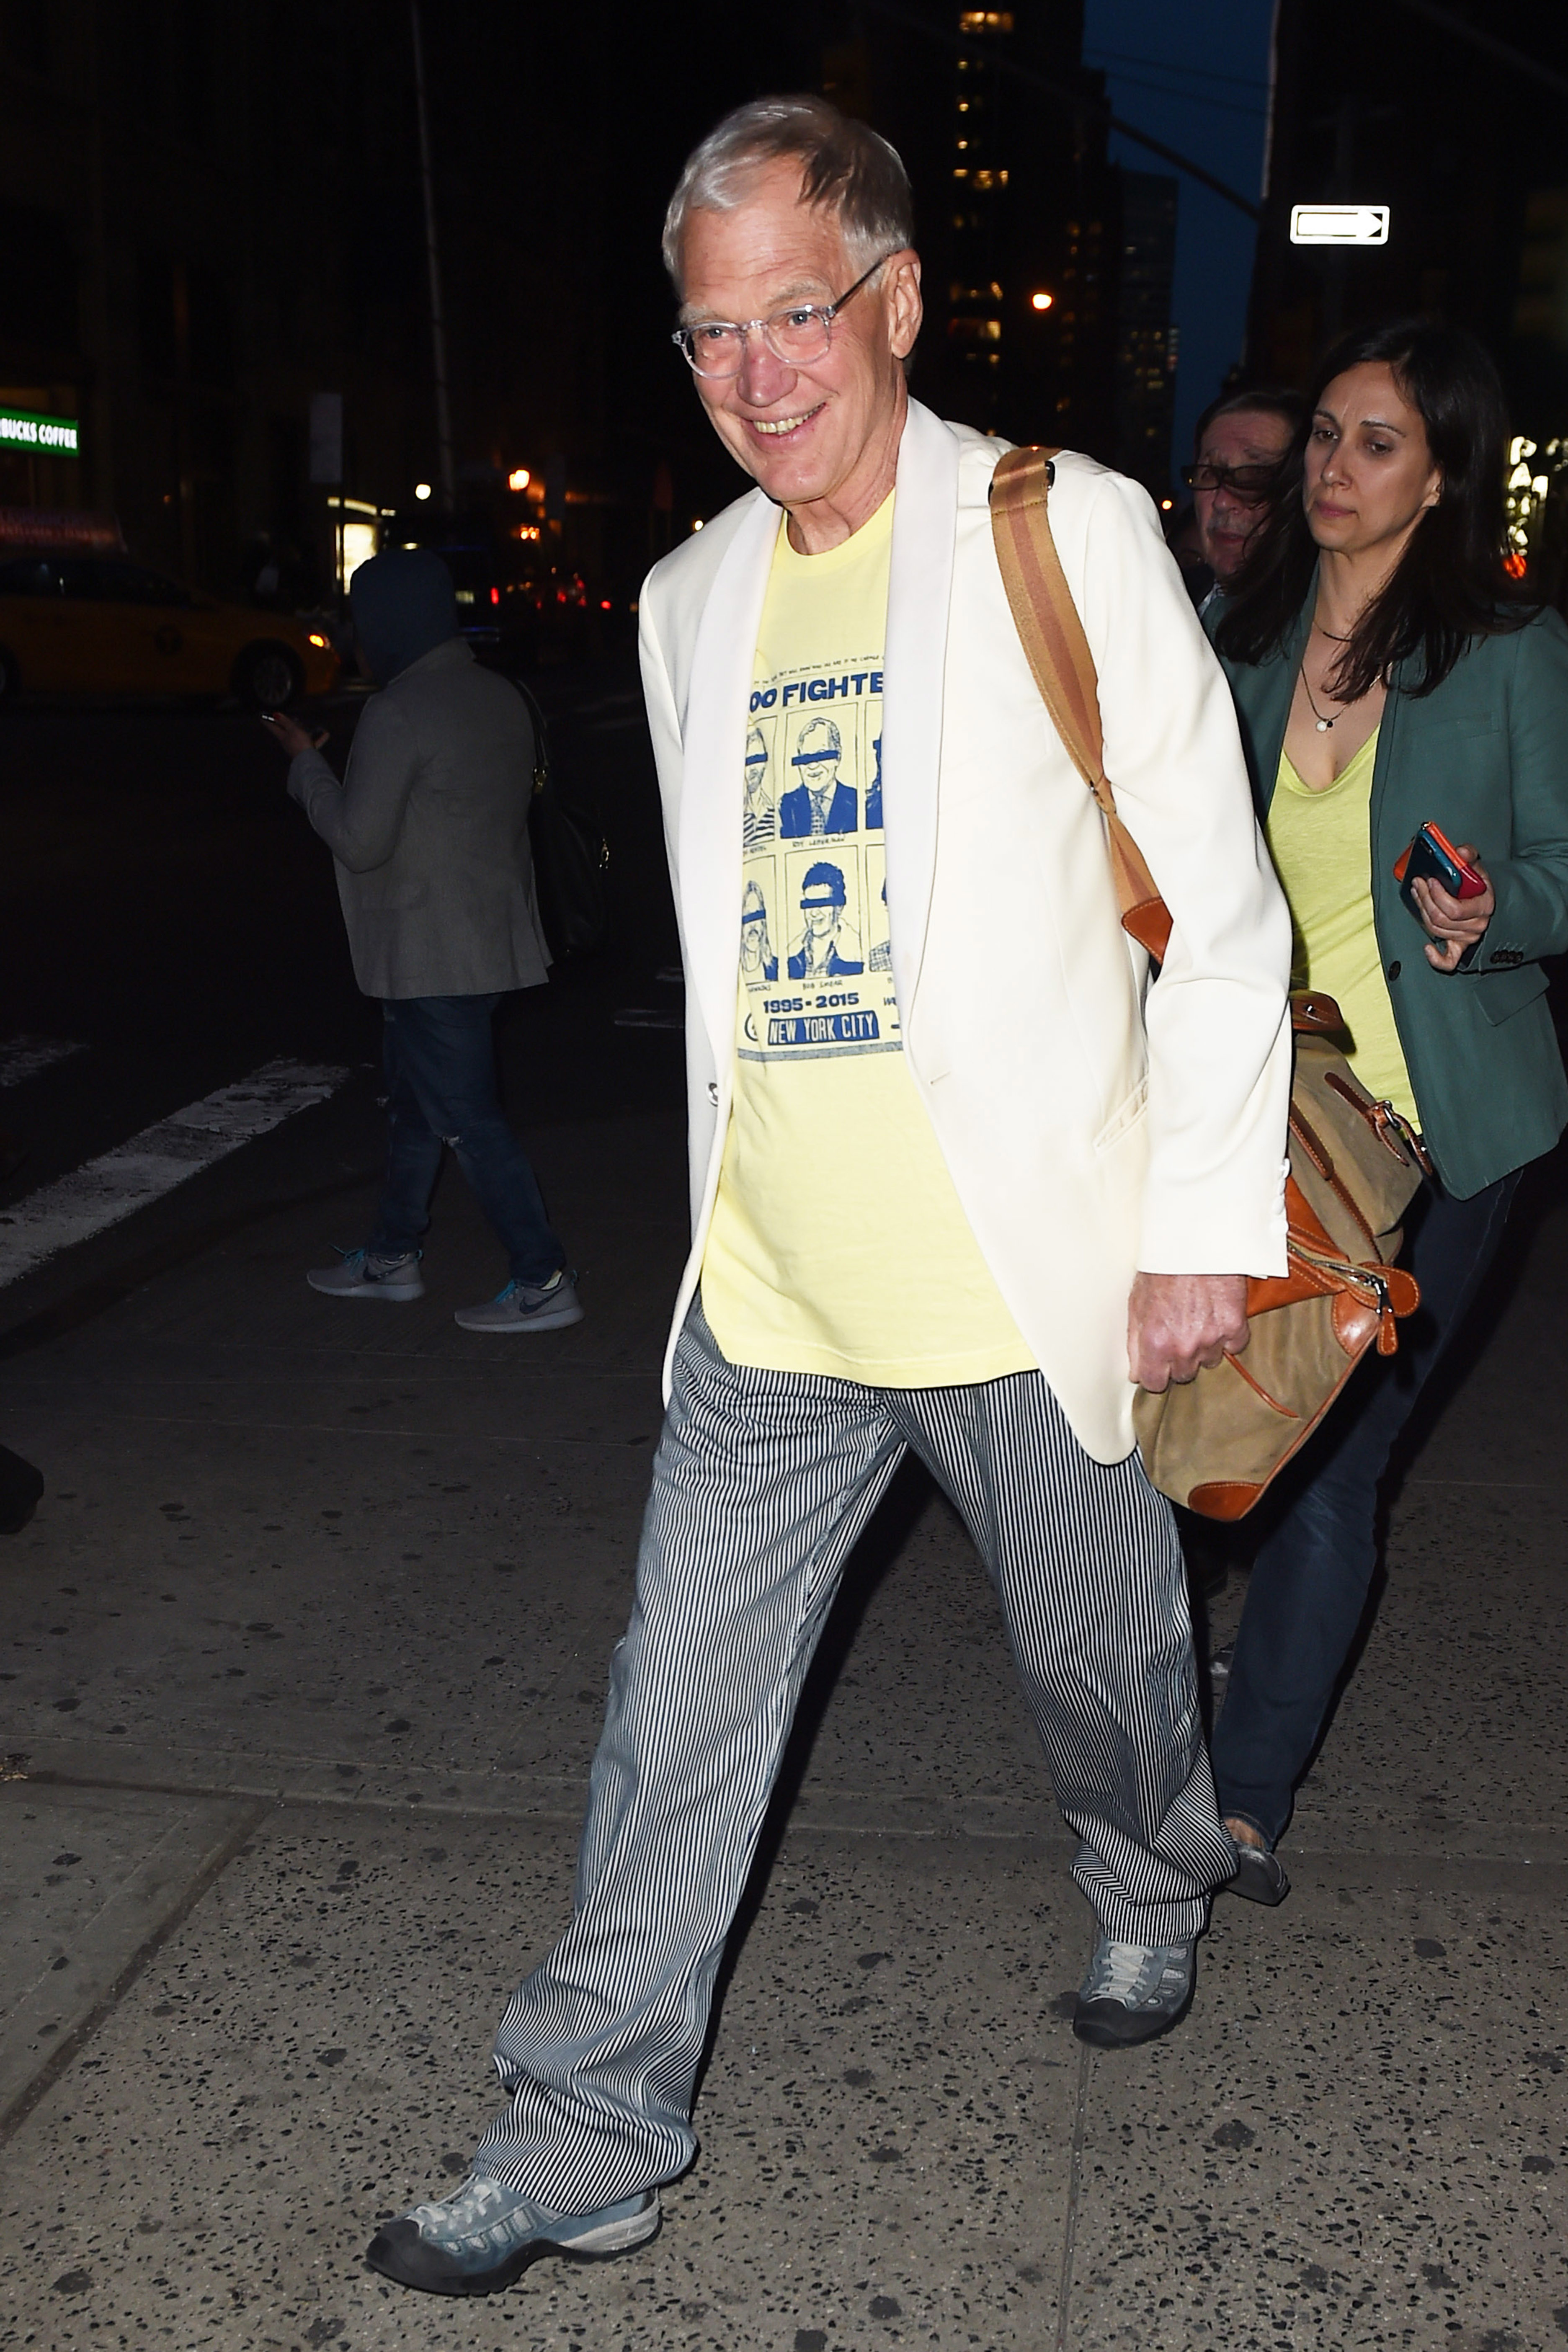 David Letterman, man of the people, walks to his afterparty